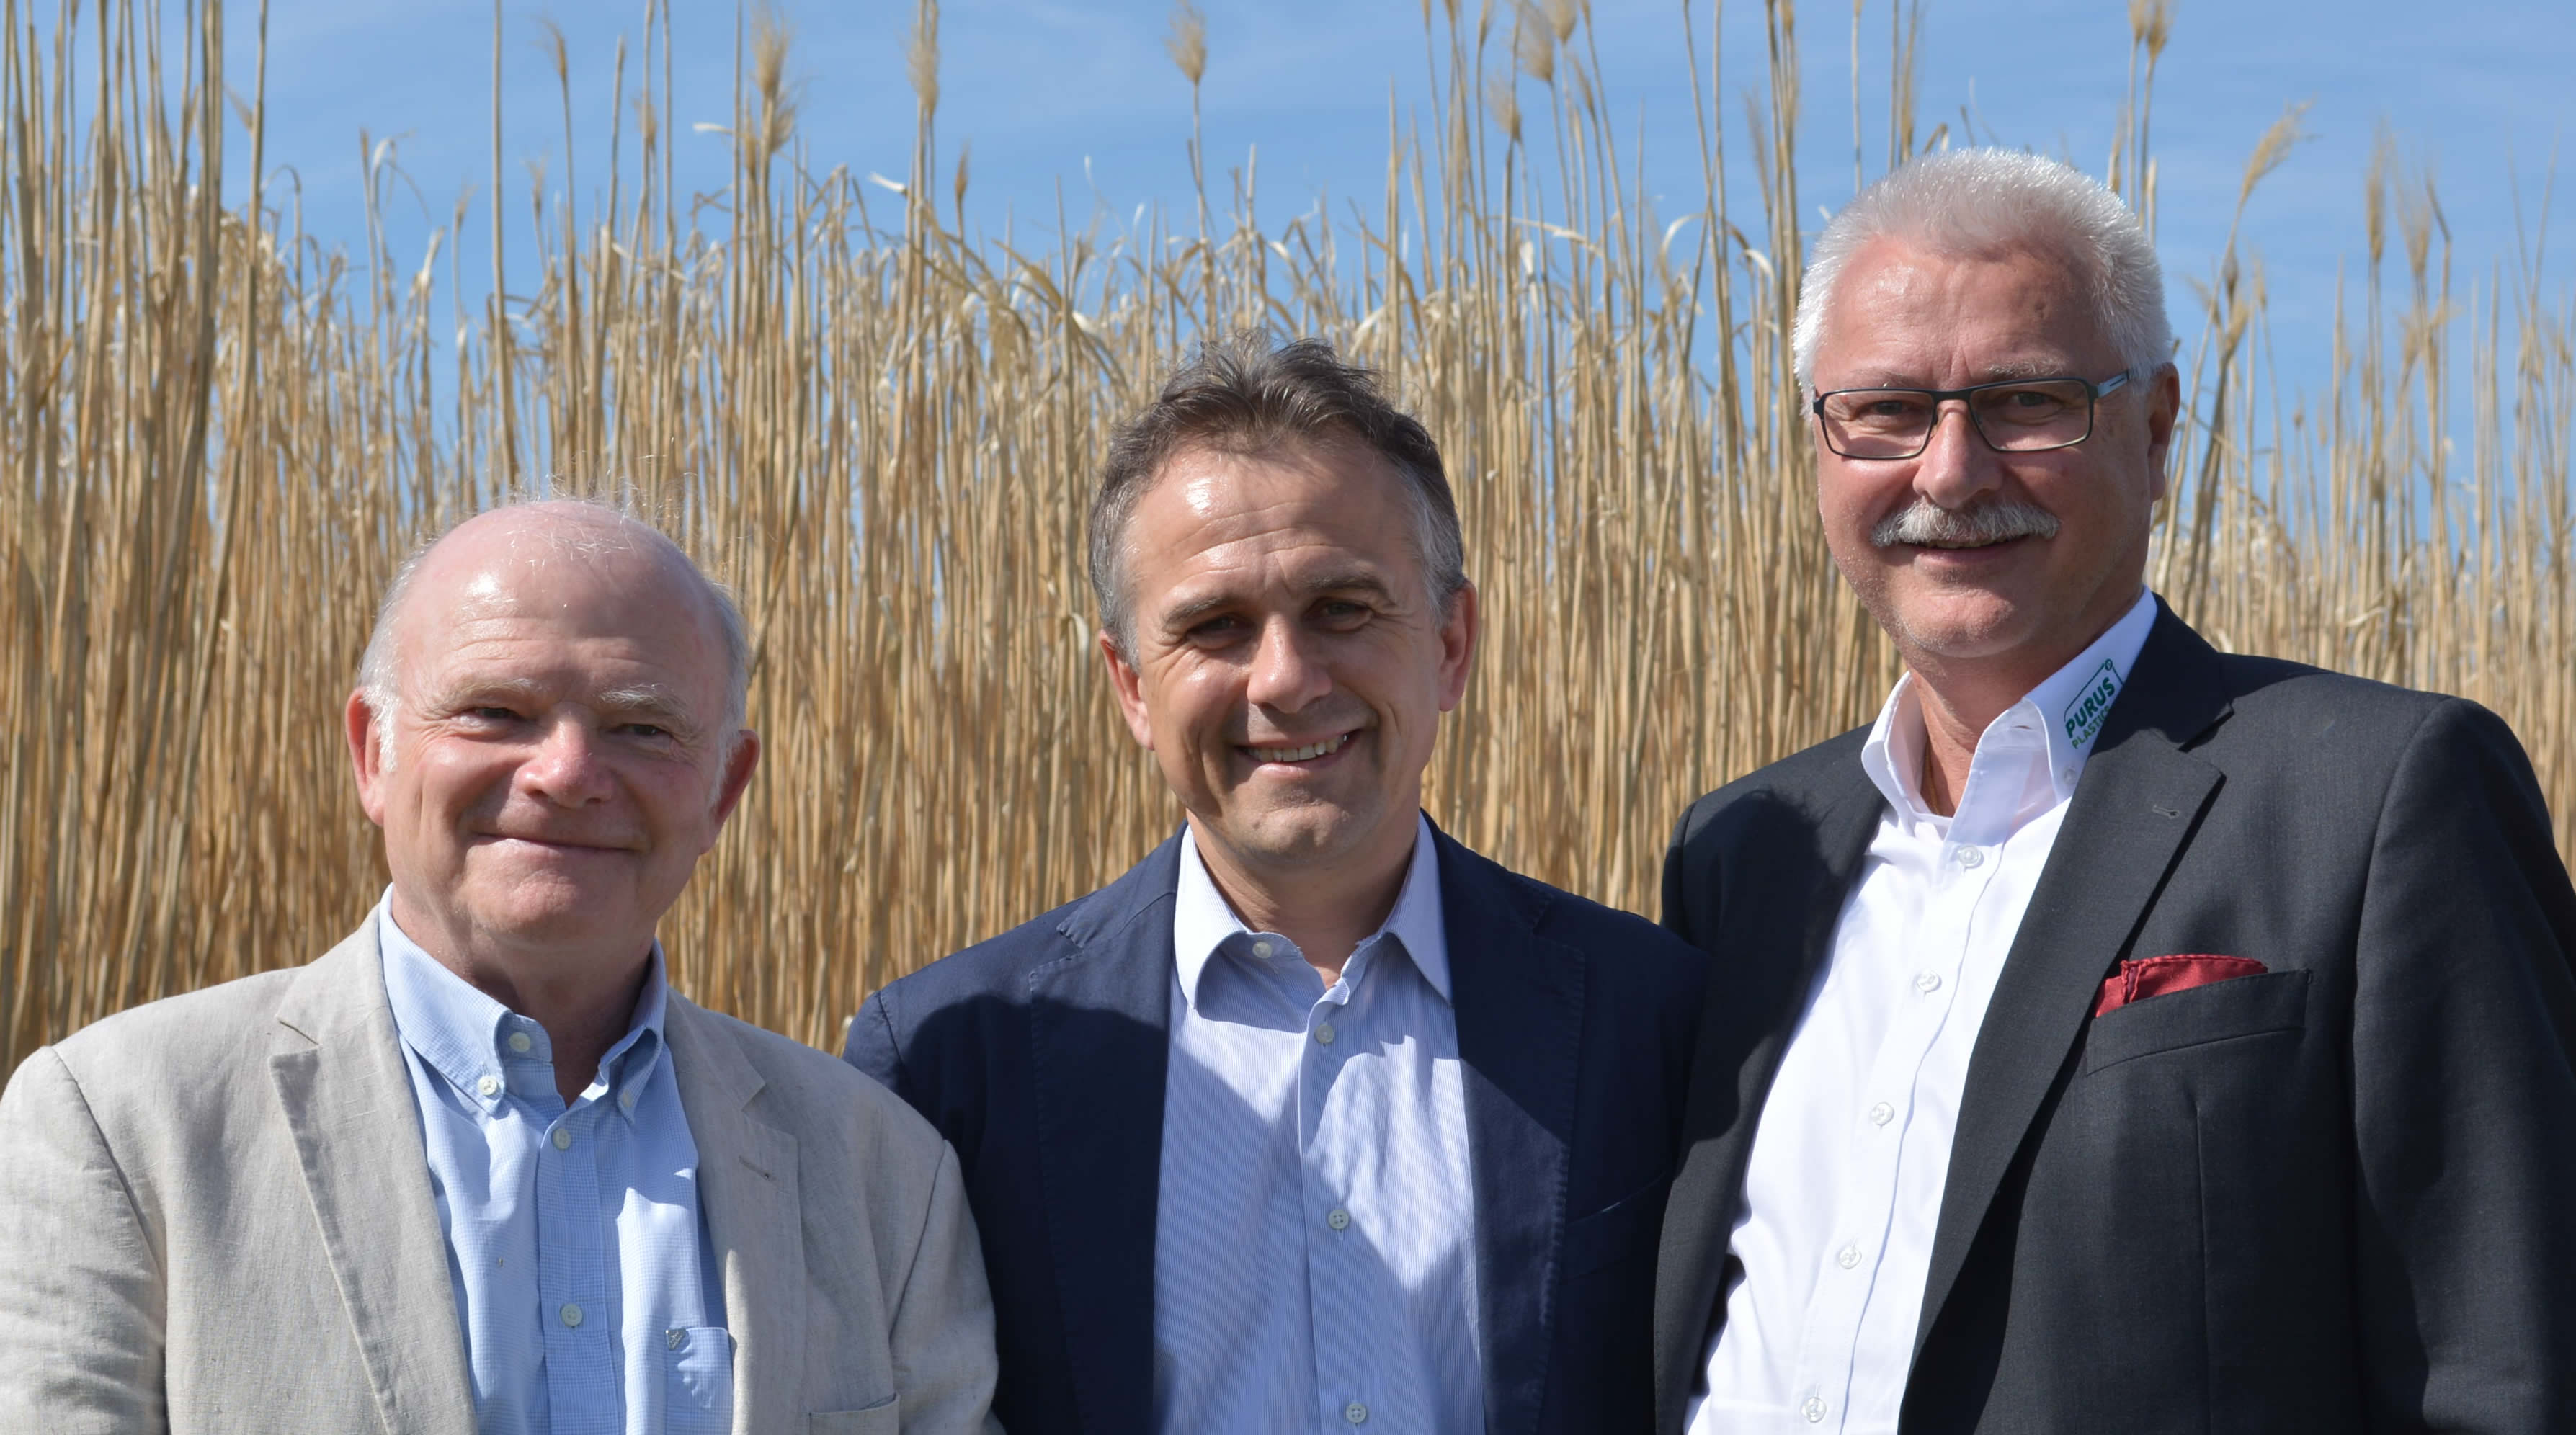 Professionals serving professionals. ECOVEGETAL founders are landscape architect, farmer and industrial. From left to right: Francis Pelletier, Pierre Georgel, Jürgen Manzei.